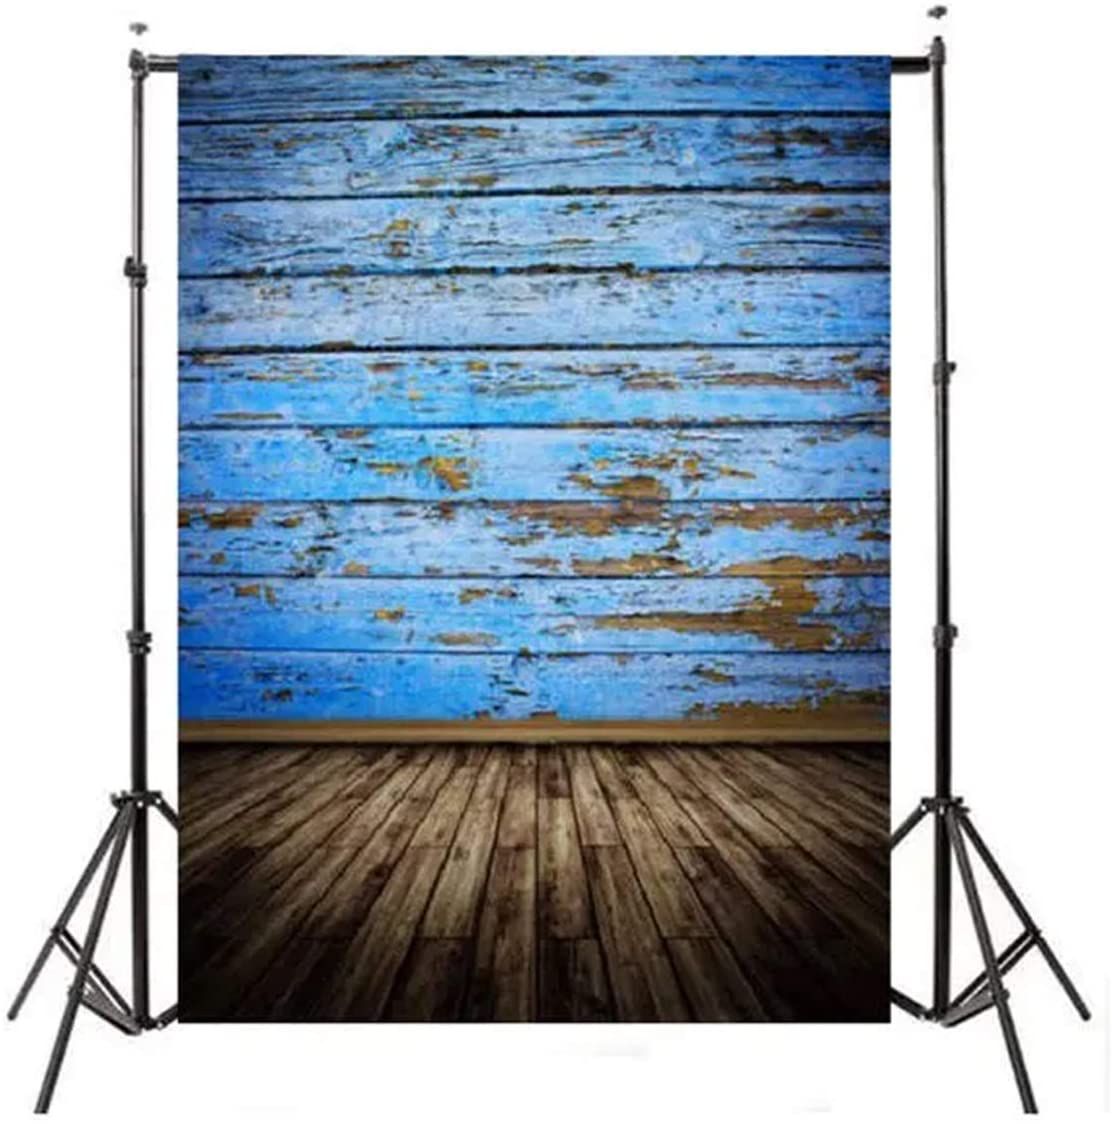 QERNTPEY Photo Backgrounds Blue Wood Floor Photography Backdrop Background Studio Photo Prop Easy to Carry (Color : Multi-Colored, Size : 210x150cm)